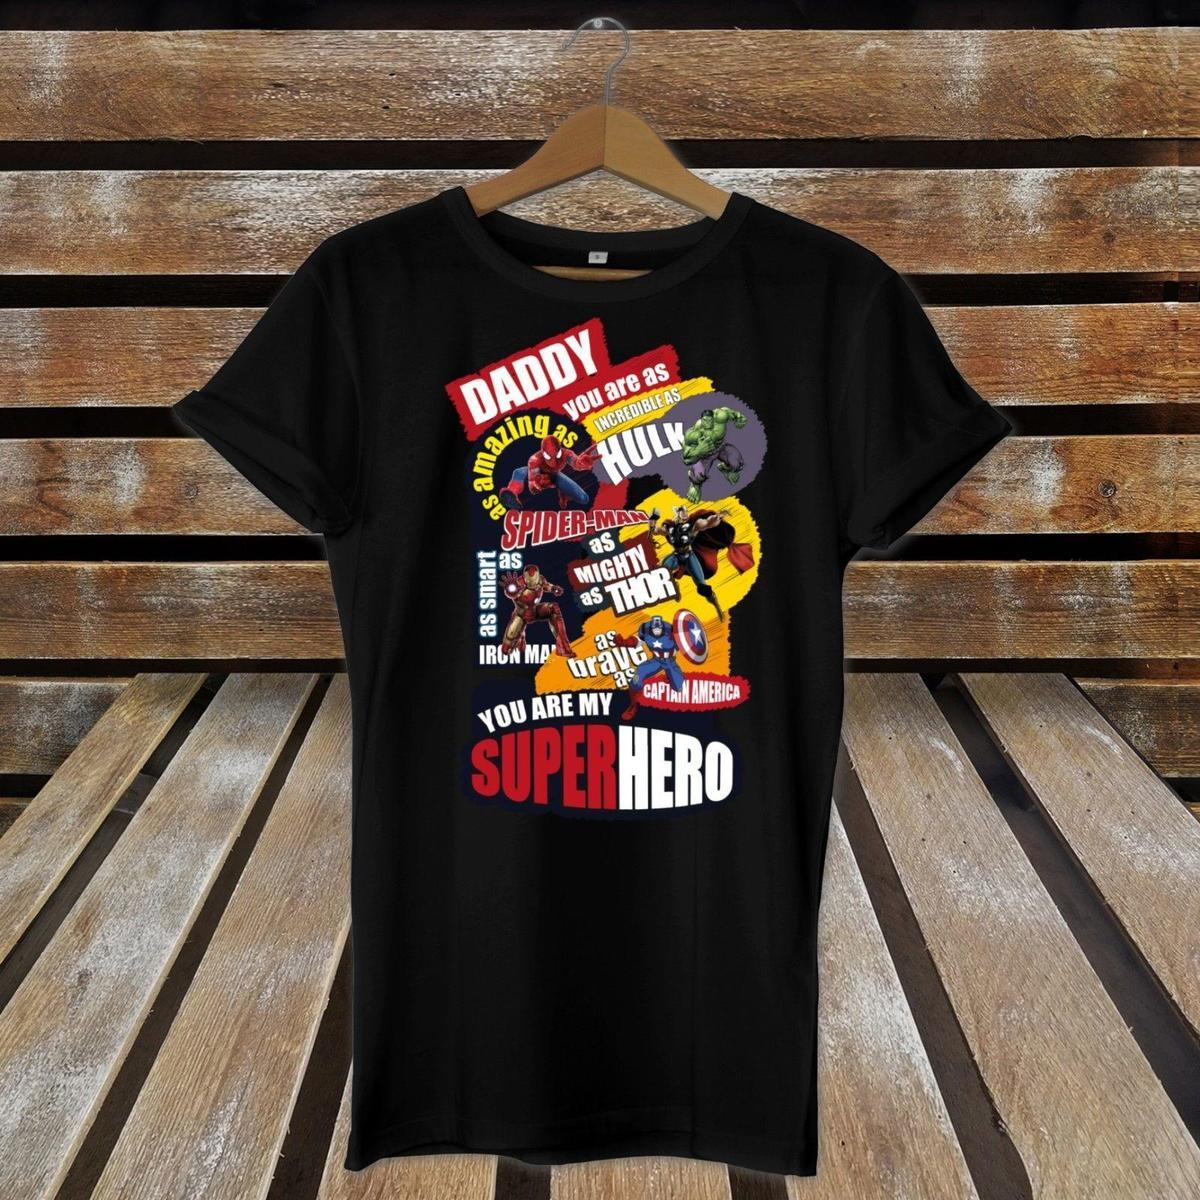 198d6d1f Daddy You Are MY Favourite Superhero COMIC Book Printed Fathers Day T Shirt  Gift Fun T Shirts Online Tshirt And Shirt From Linnan09, $14.67| DHgate.Com